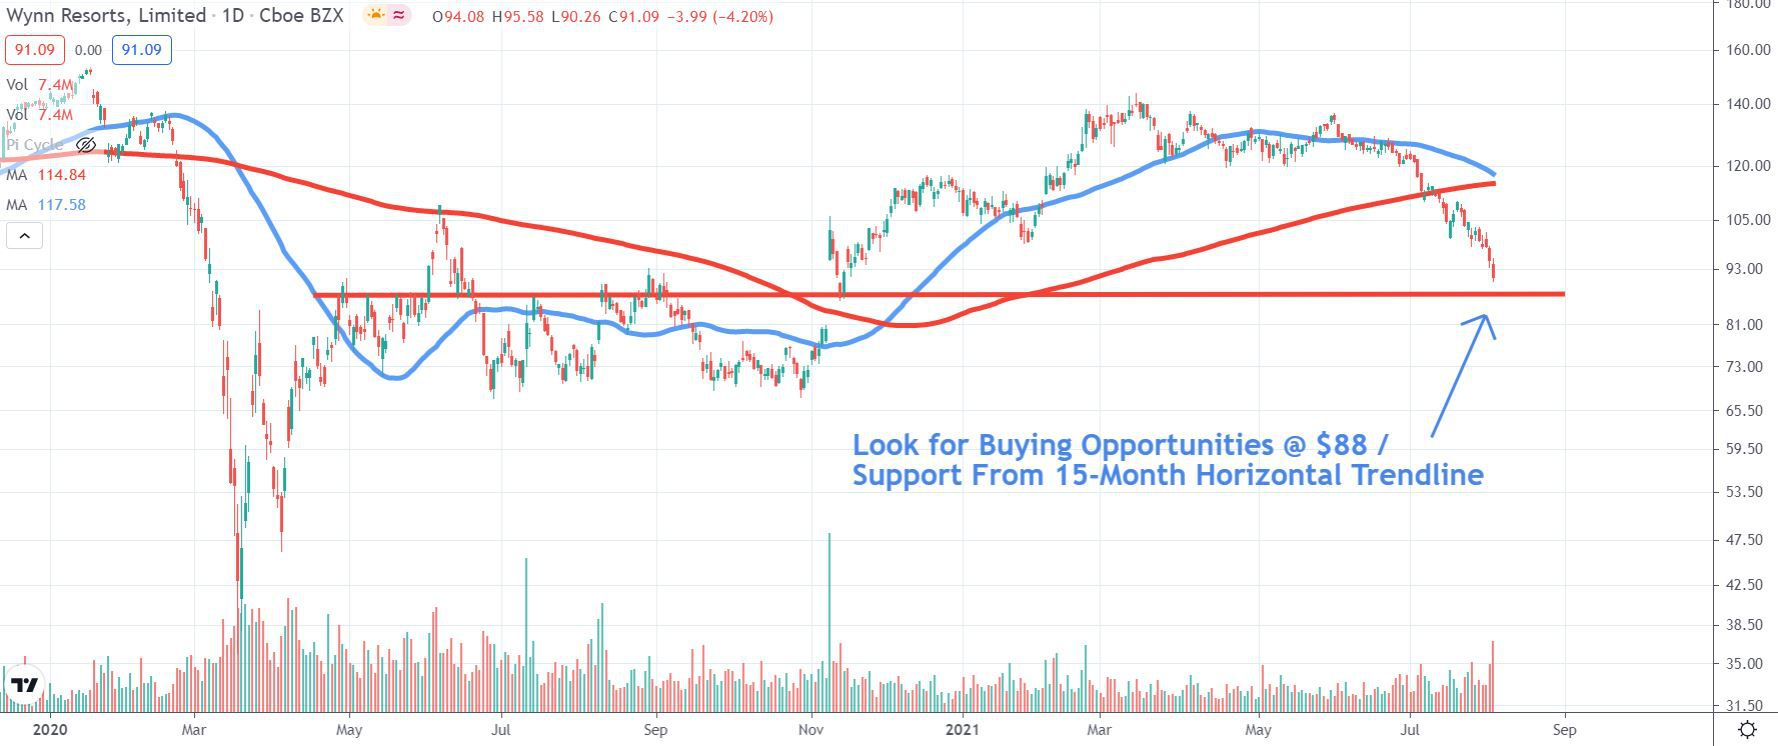 Chart depicting the share price of Wynn Resorts, Limited (WYNN)